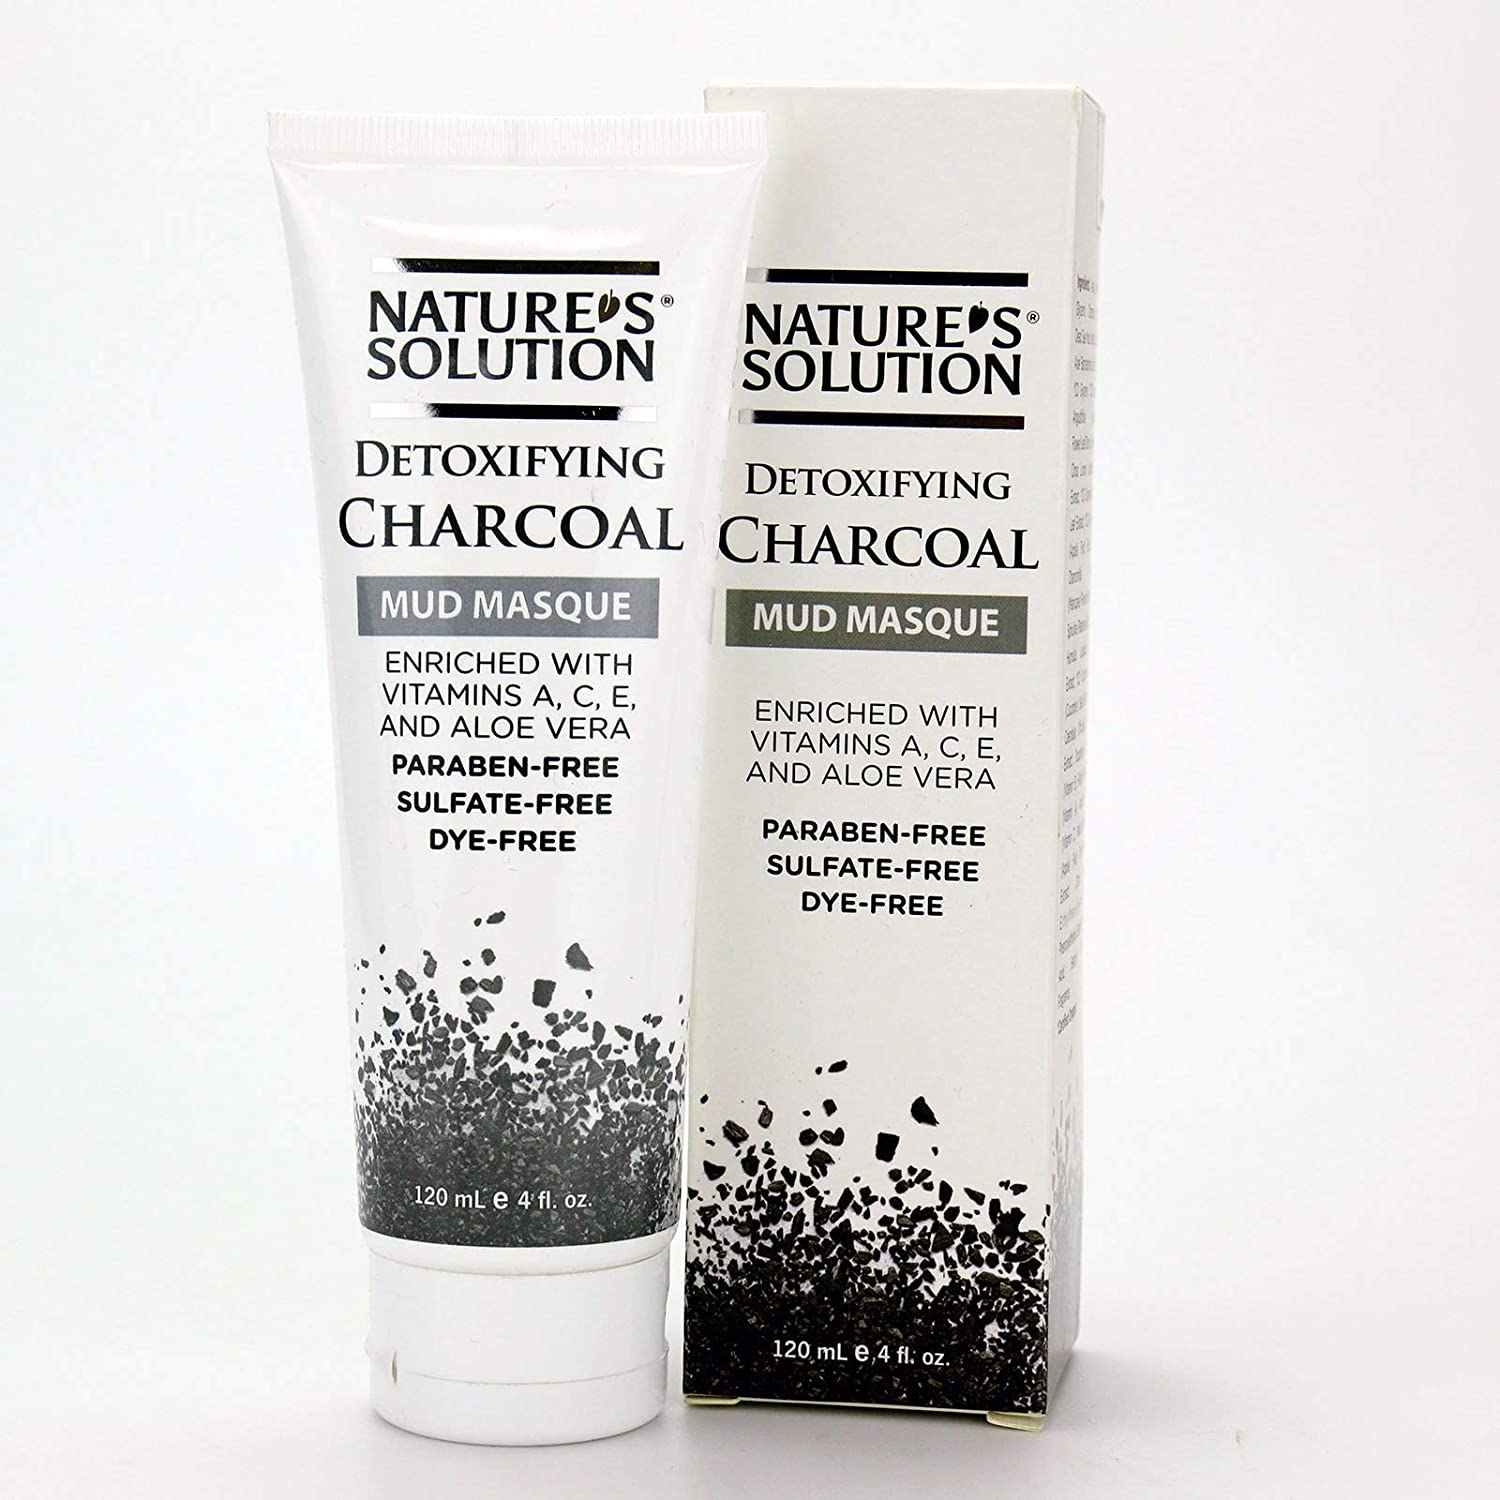 Nature's Solution Detoxifying Charcoal Mud Masque, 4 oz - Paraben-free, Sulfate-free, Cruelty-free